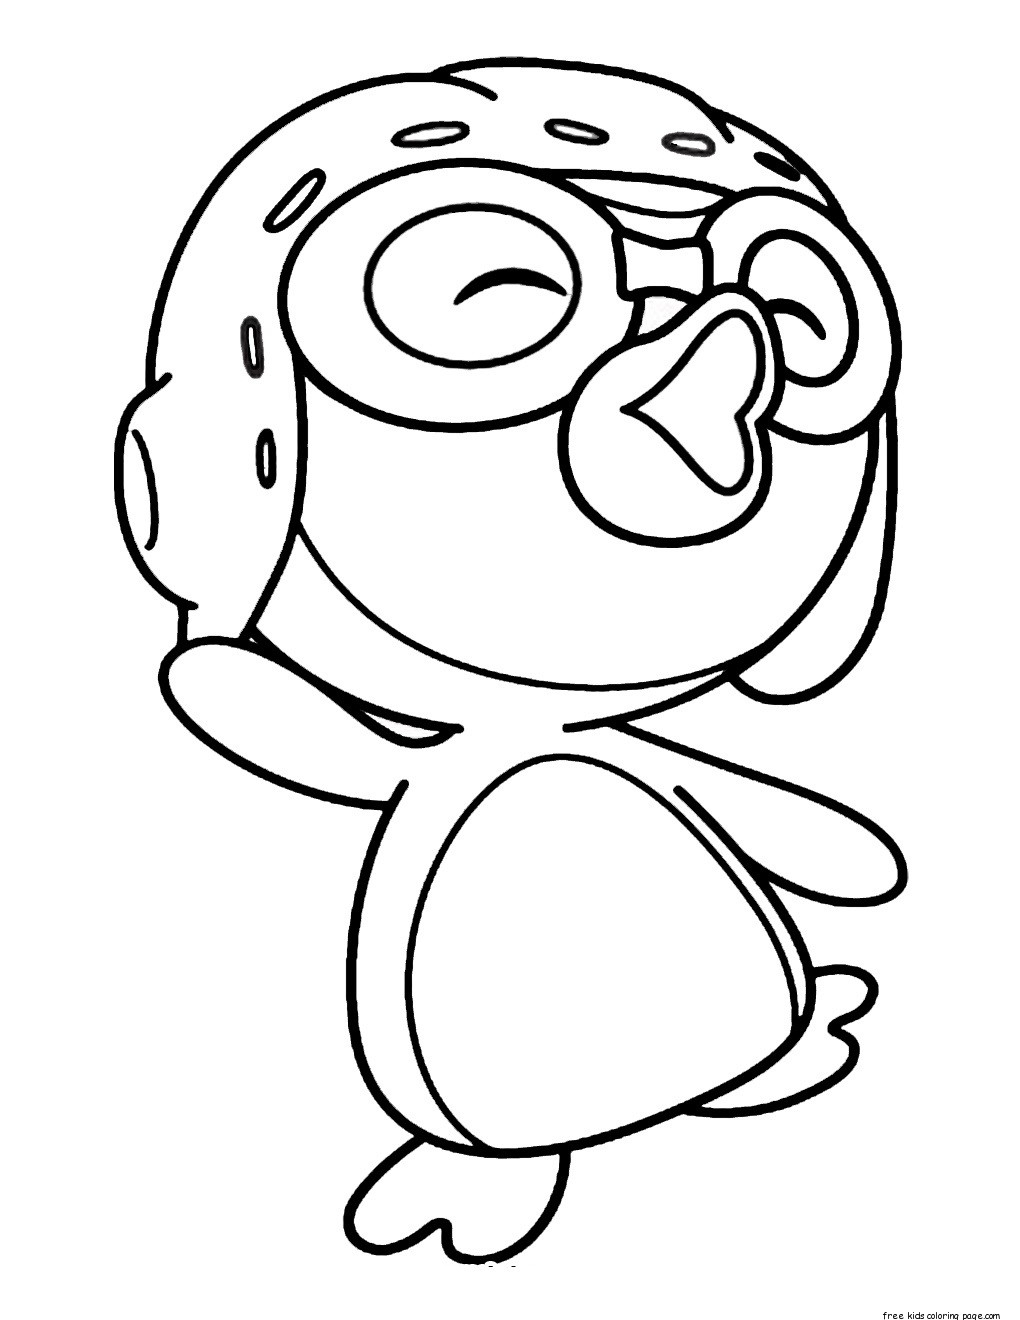 Printable Coloring Pages Cars Coloring Book Ideas Crayolae Coloring Pages Print Disney Cars For